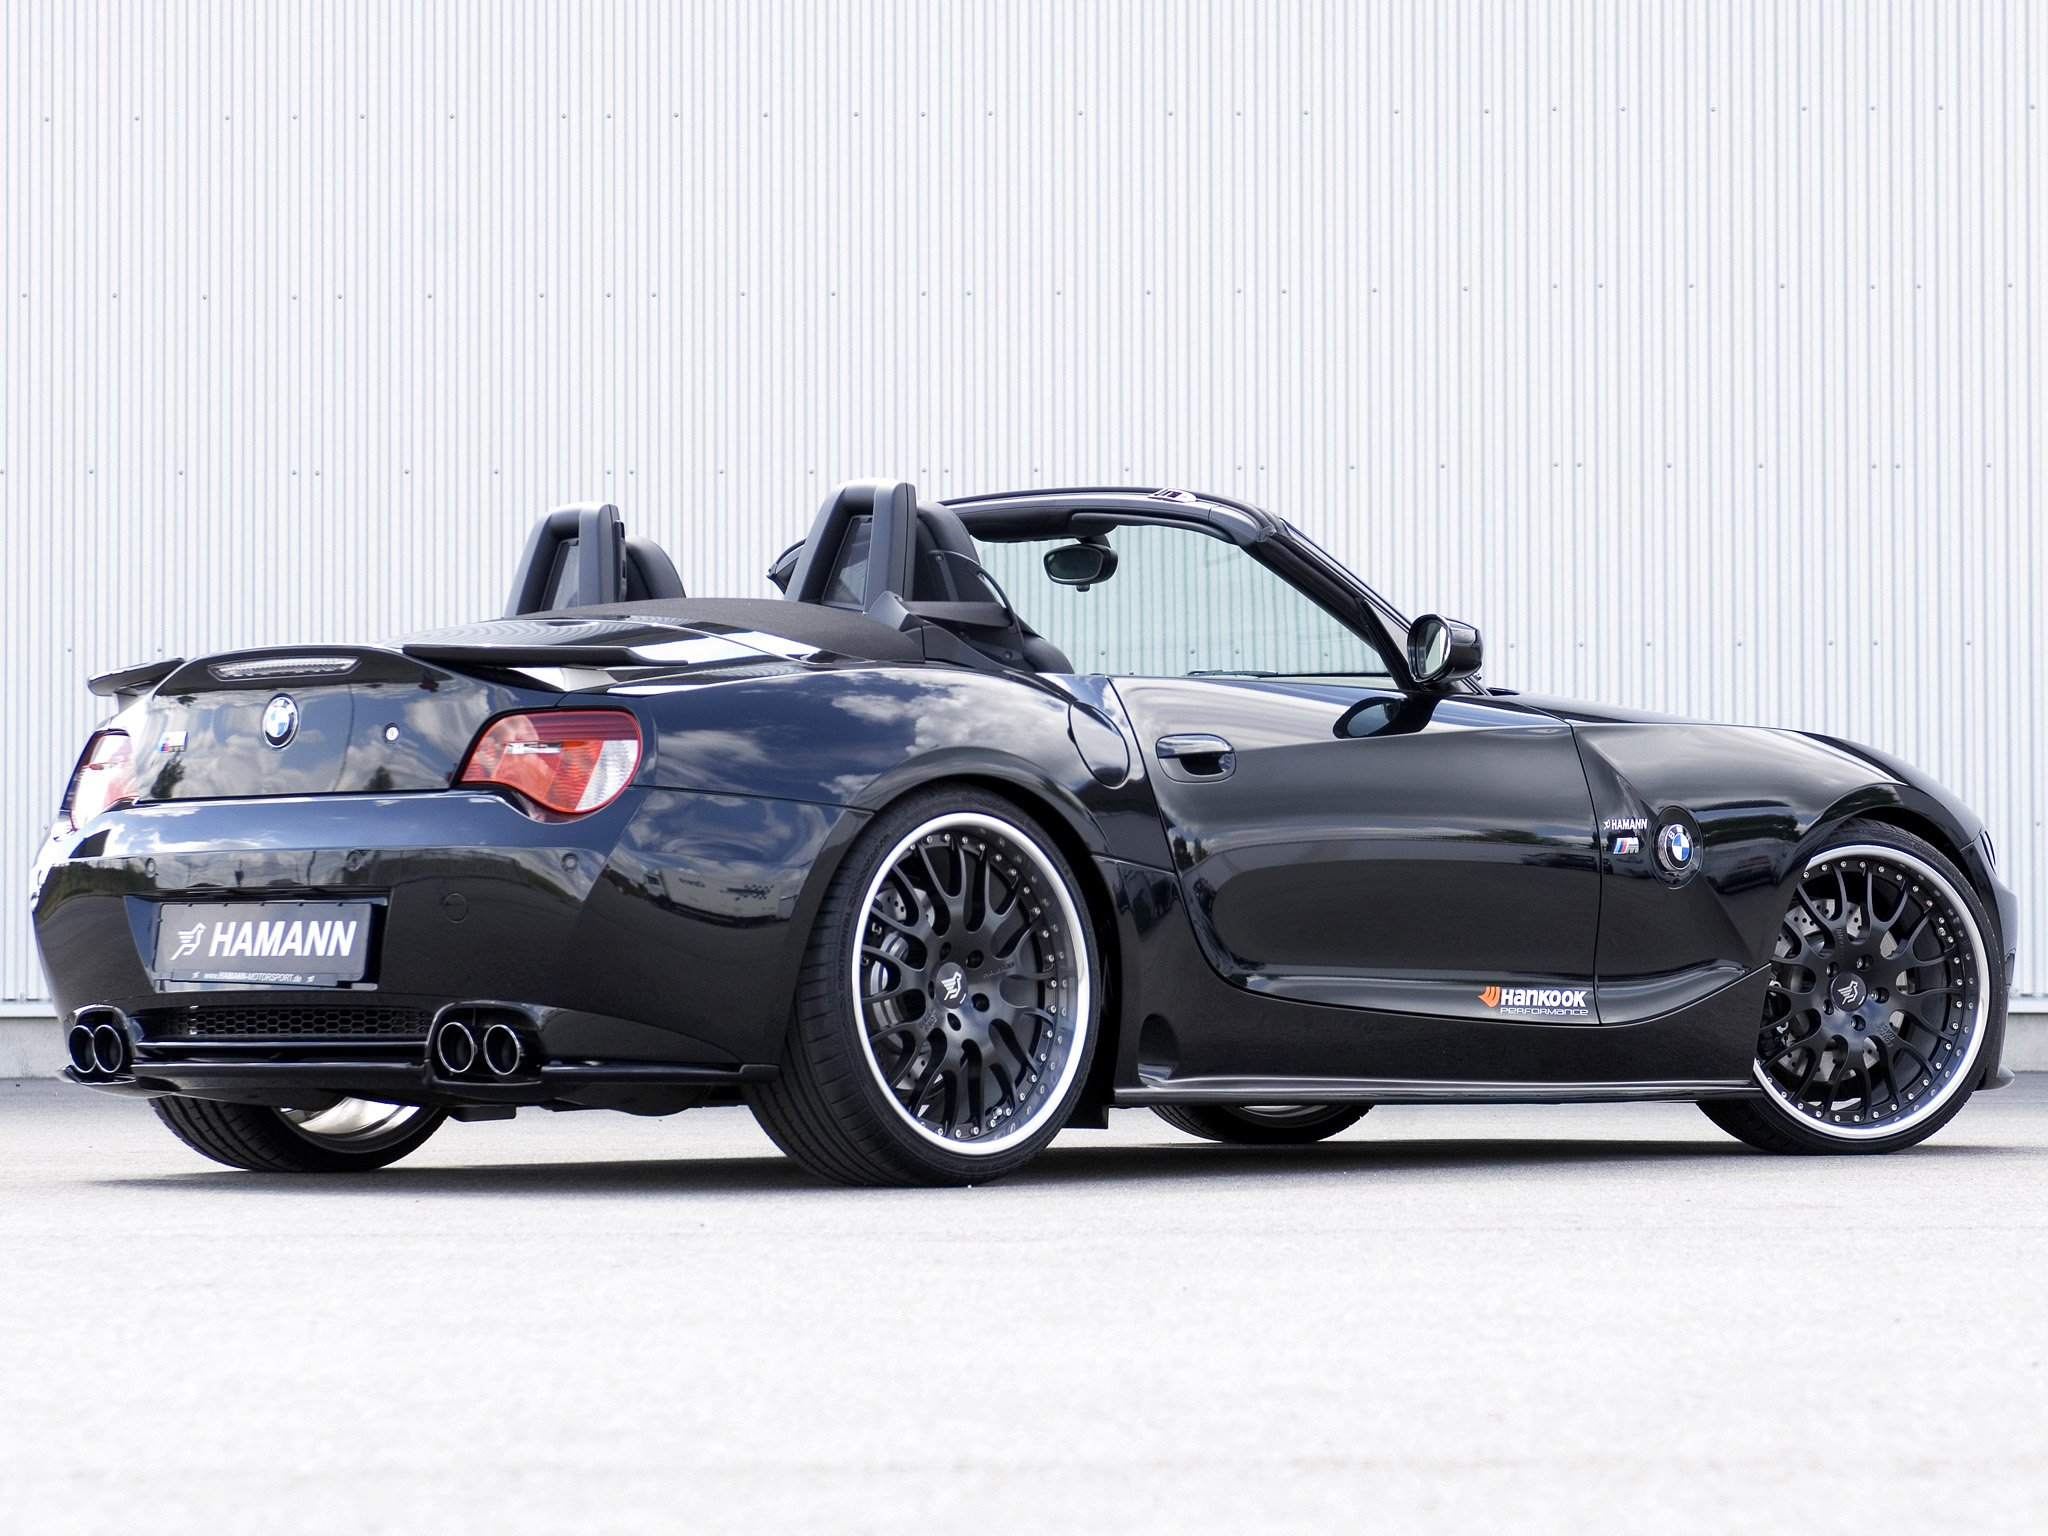 hamann bmw z4 m roadster e85 cars modified 2008. Black Bedroom Furniture Sets. Home Design Ideas